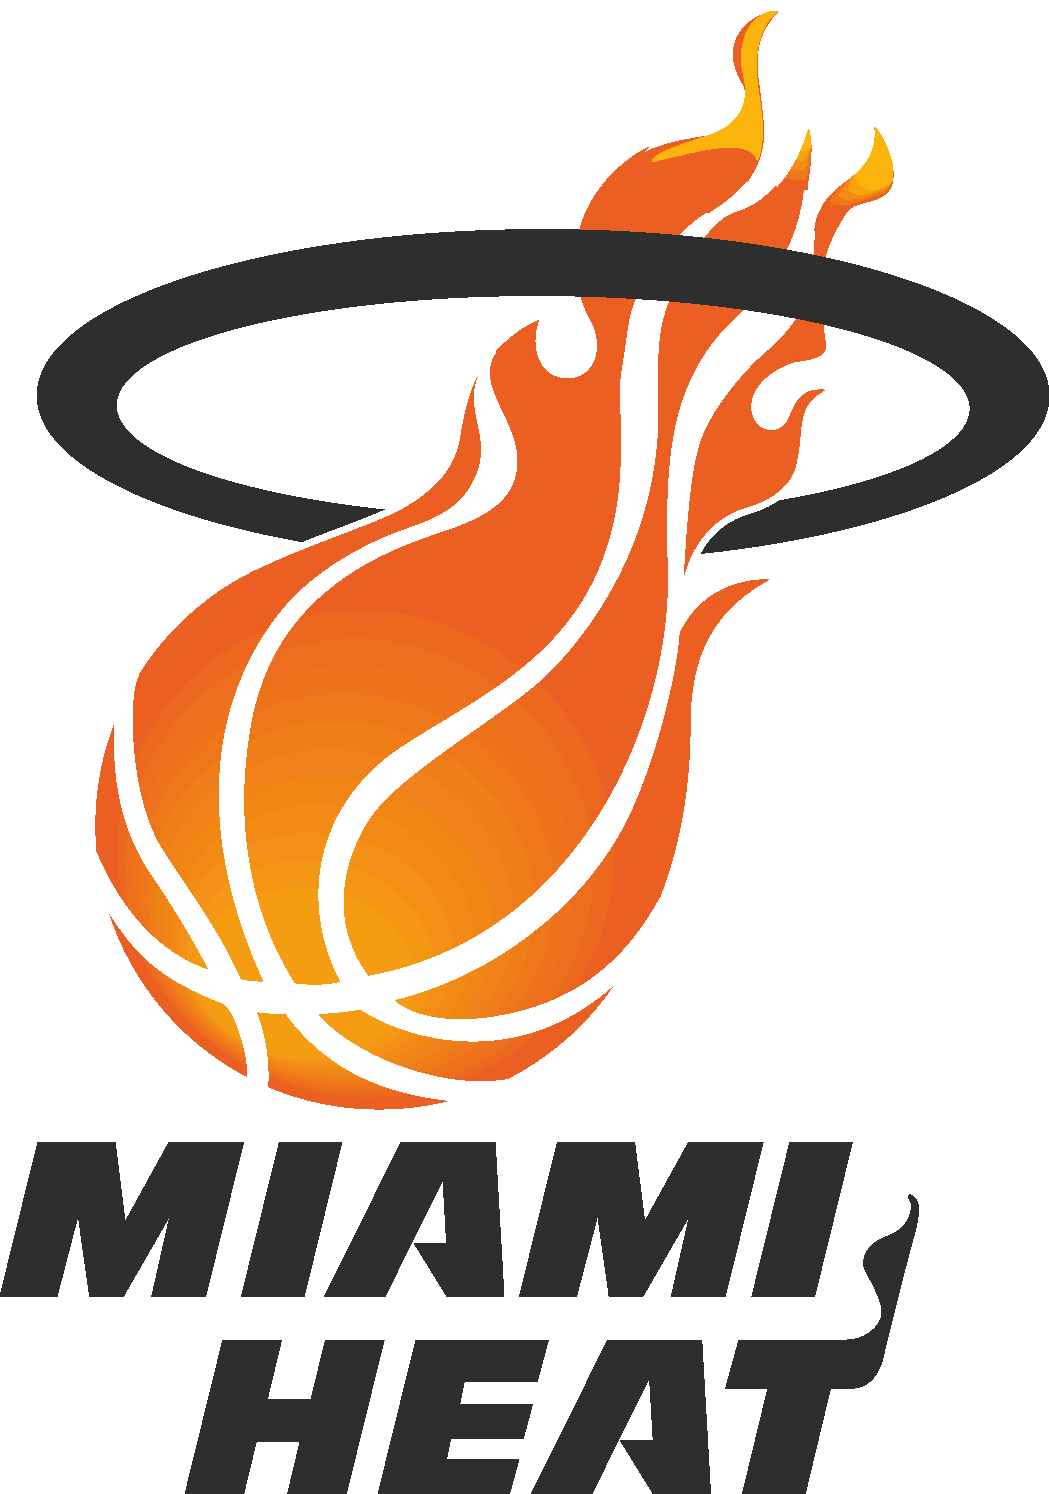 heat logo miami heat vector eps free download logo icons clipart rh freelogovectors net miami heat nba logo vector